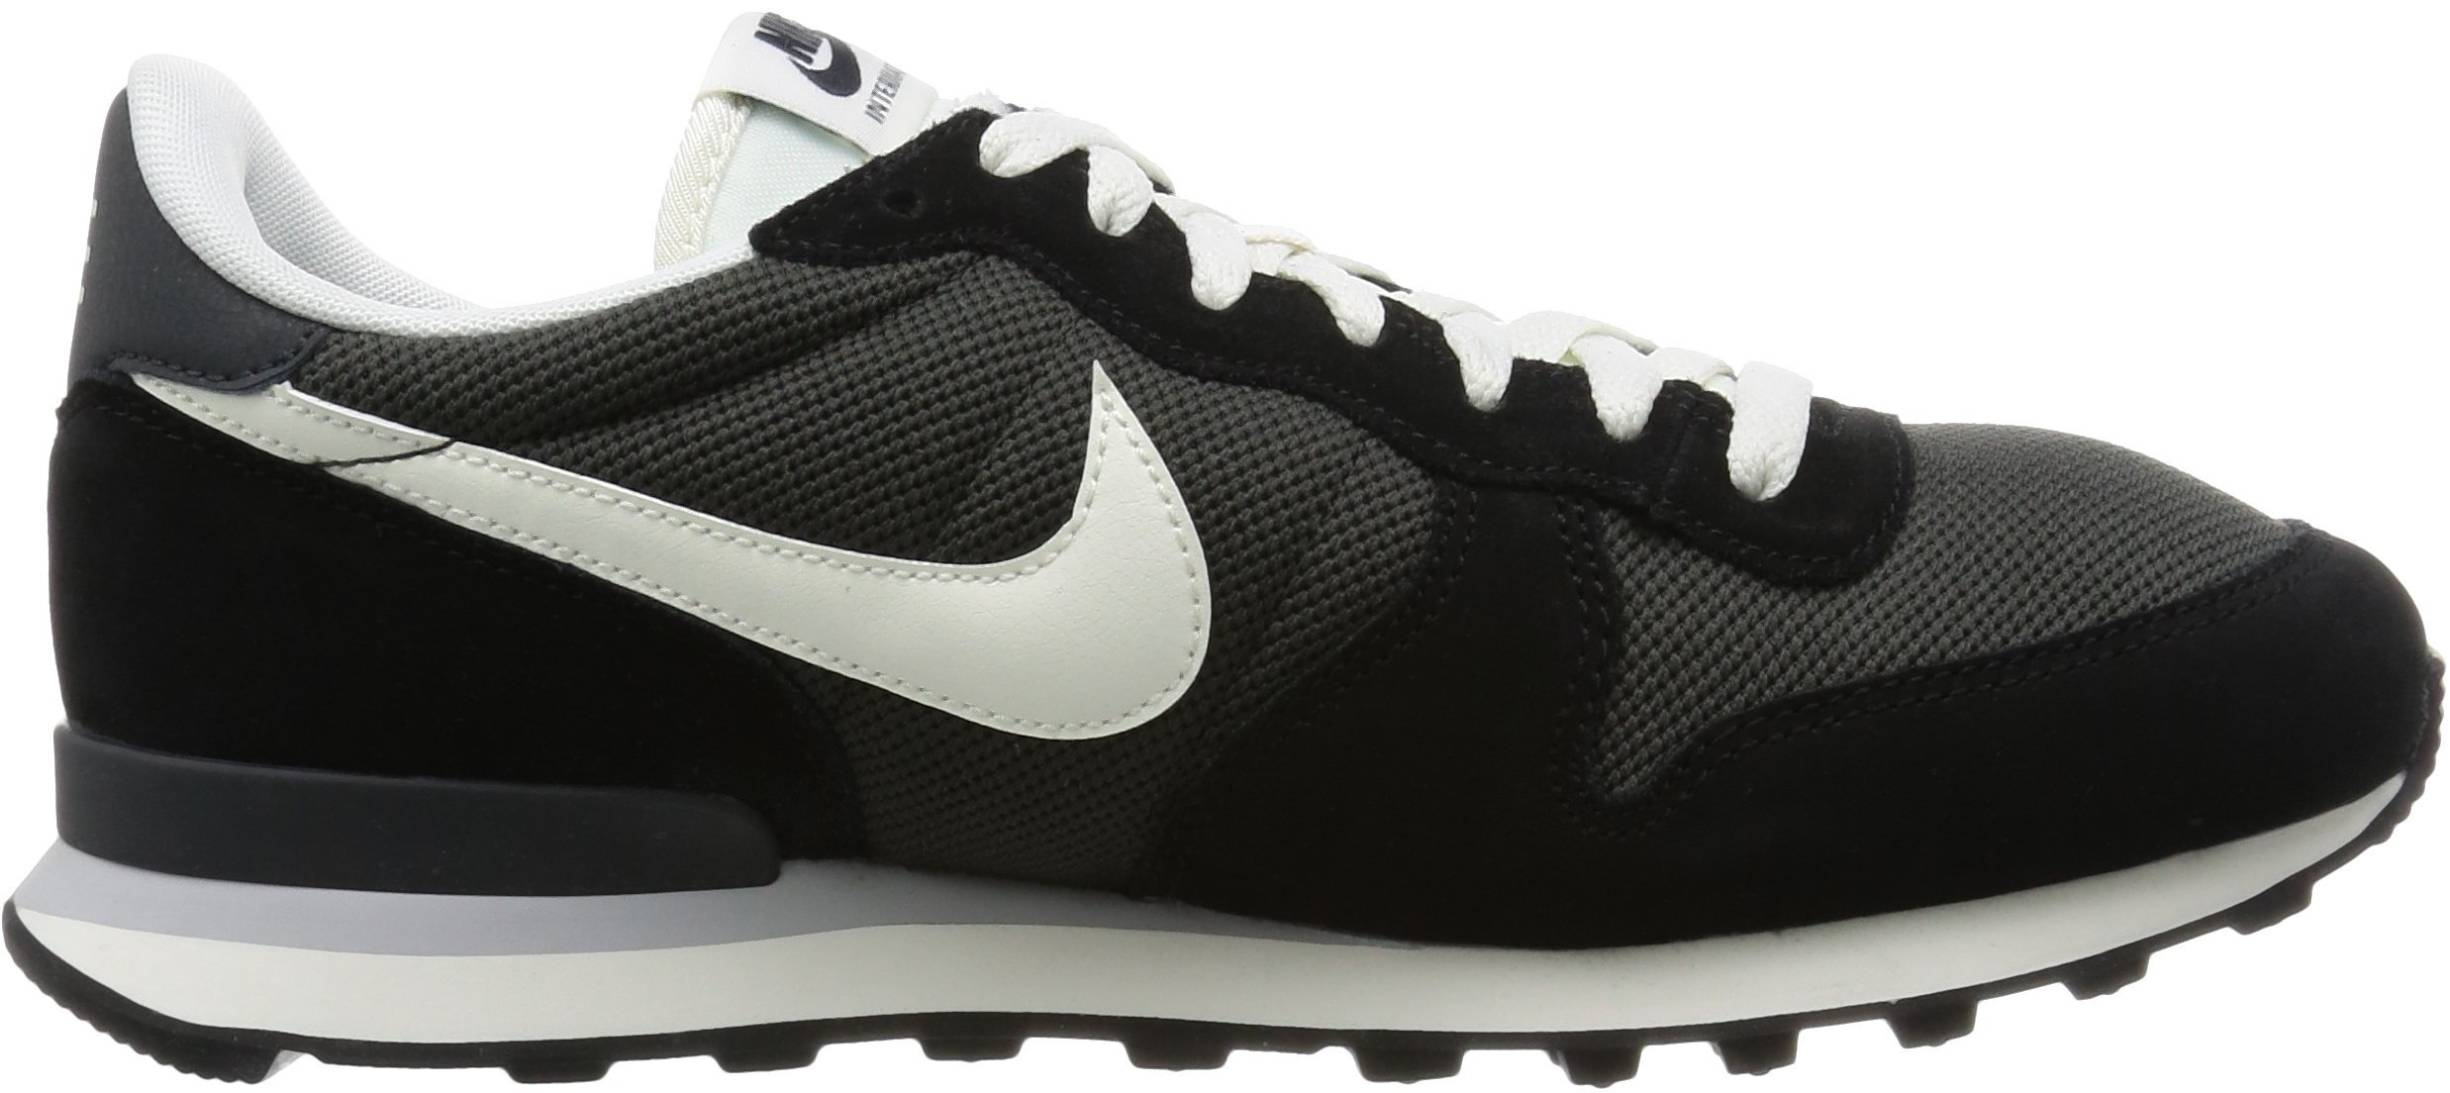 Filadelfia Limo marca  Nike Internationalist sneakers | RunRepeat